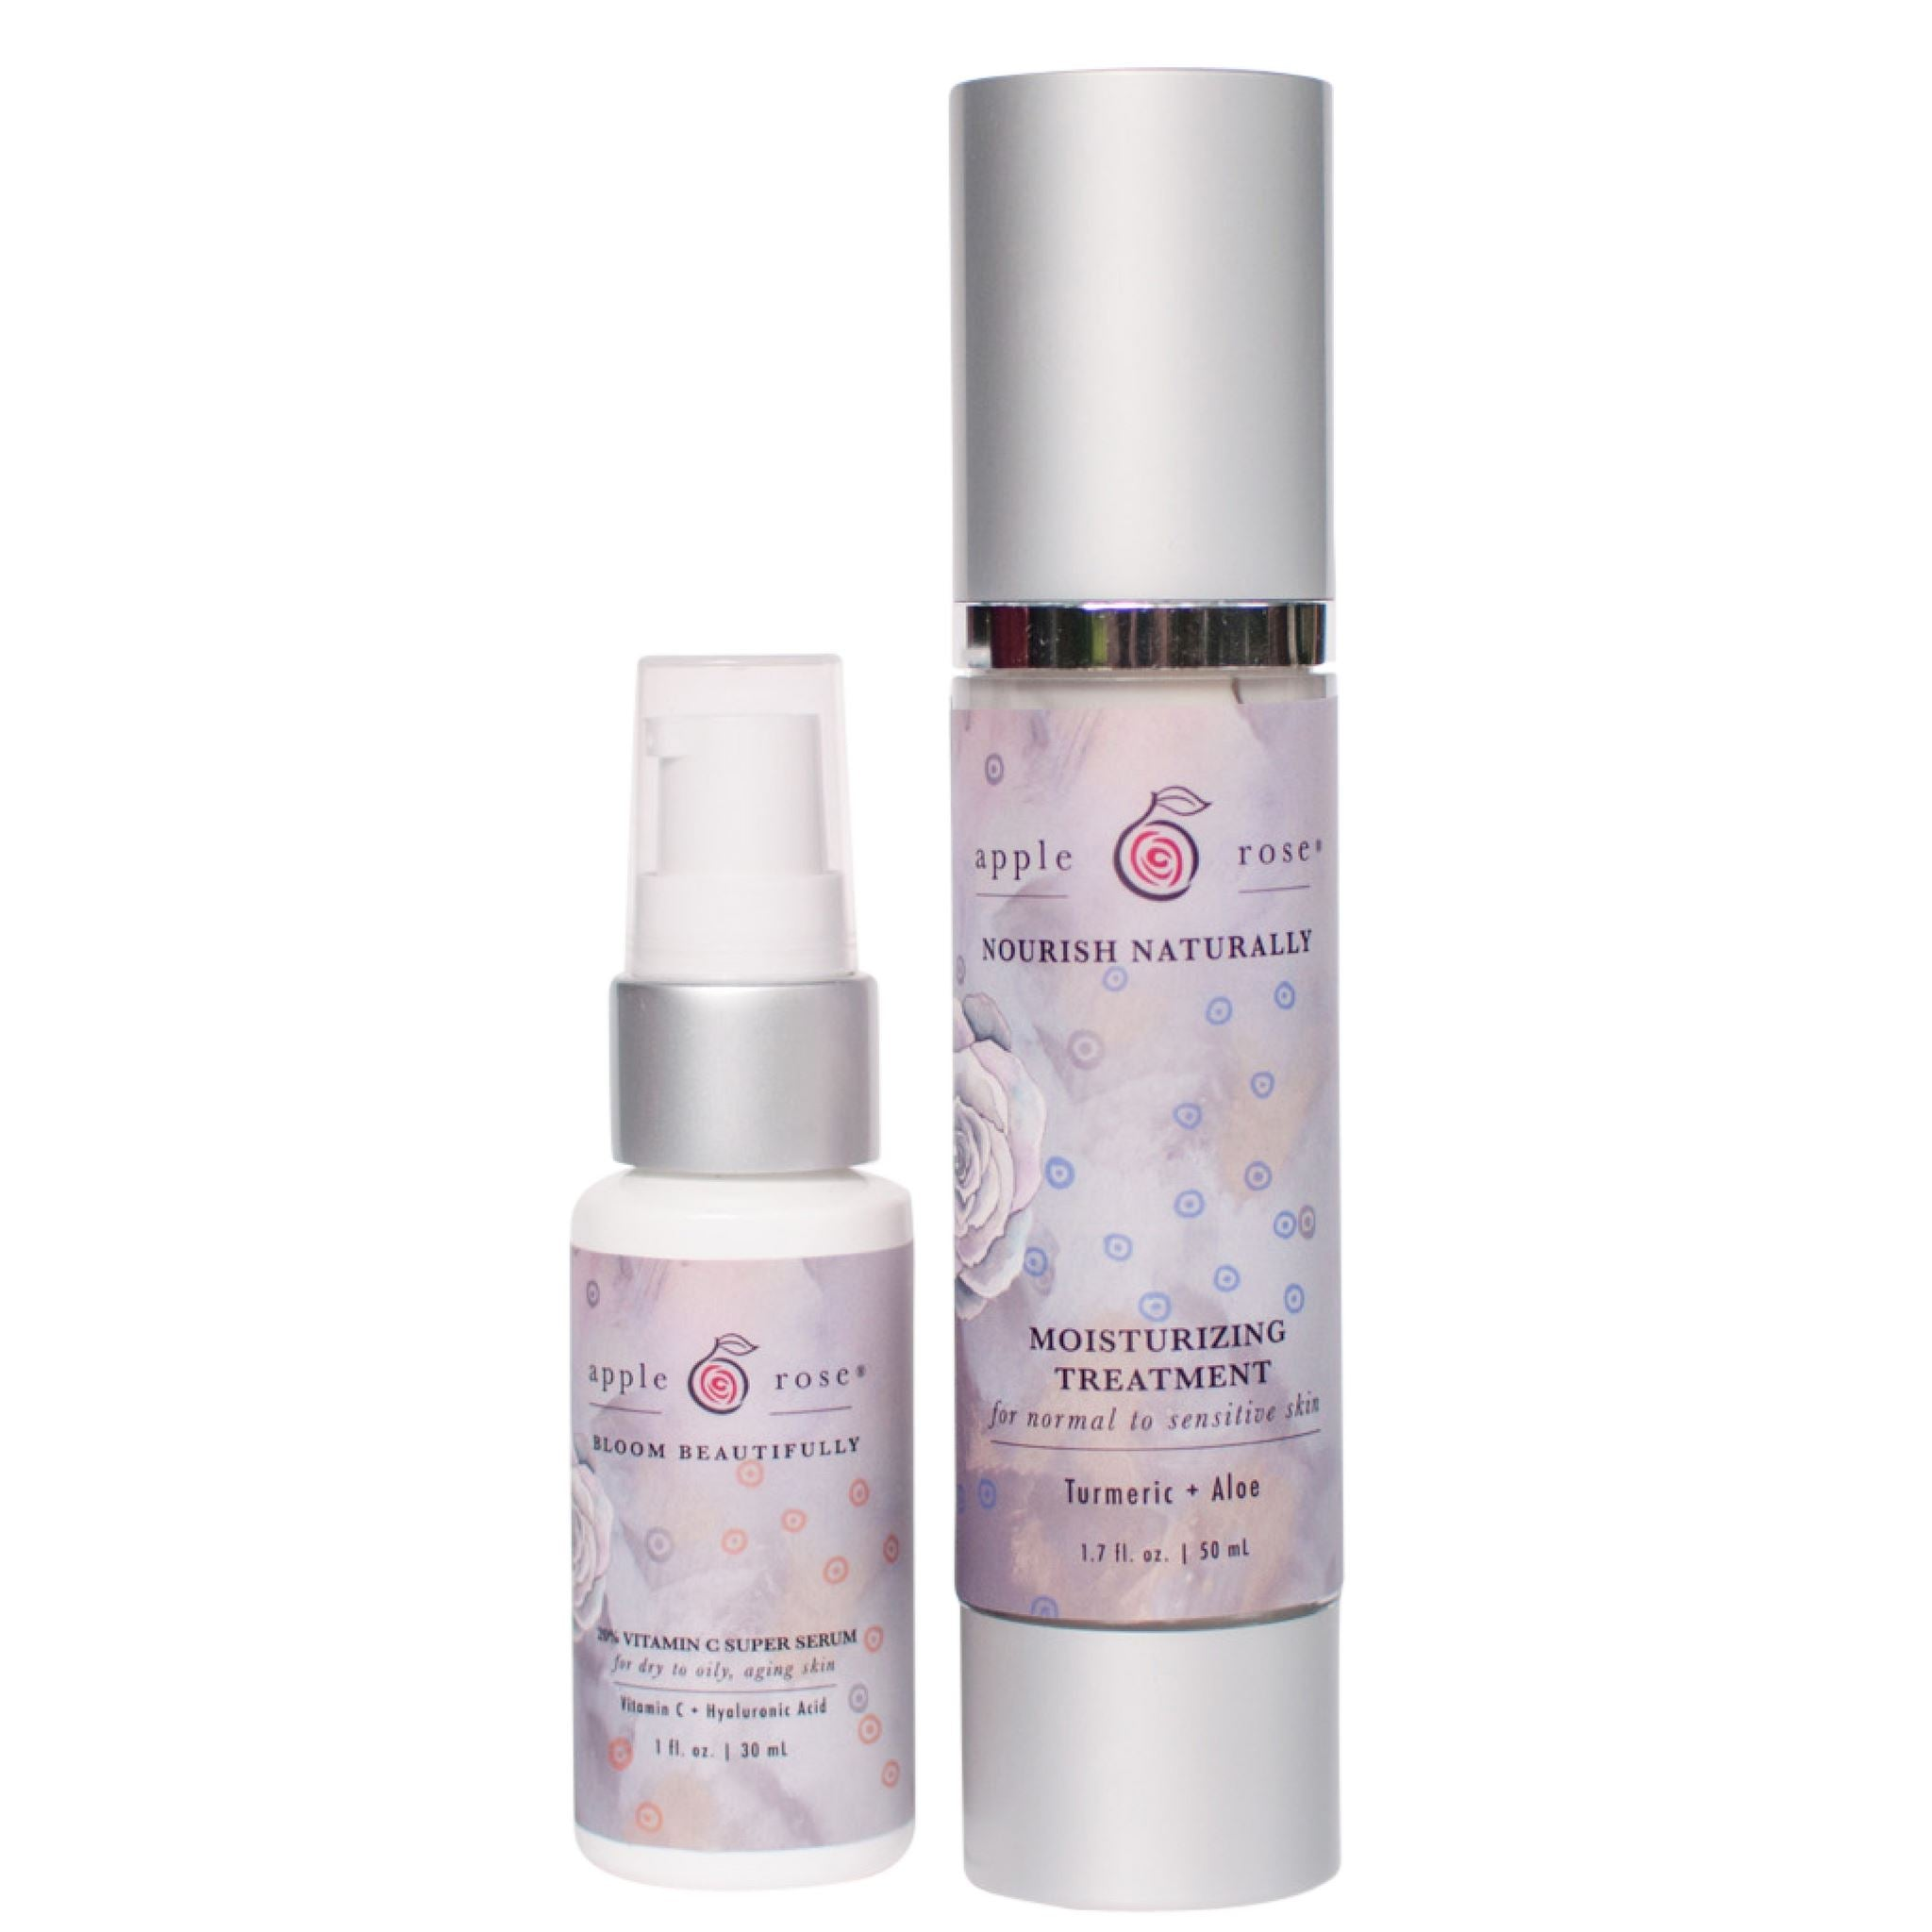 Graceful Aging Moisture Rich Bundle from Apple Rose Beauty natural and organic skin care and organic beauty